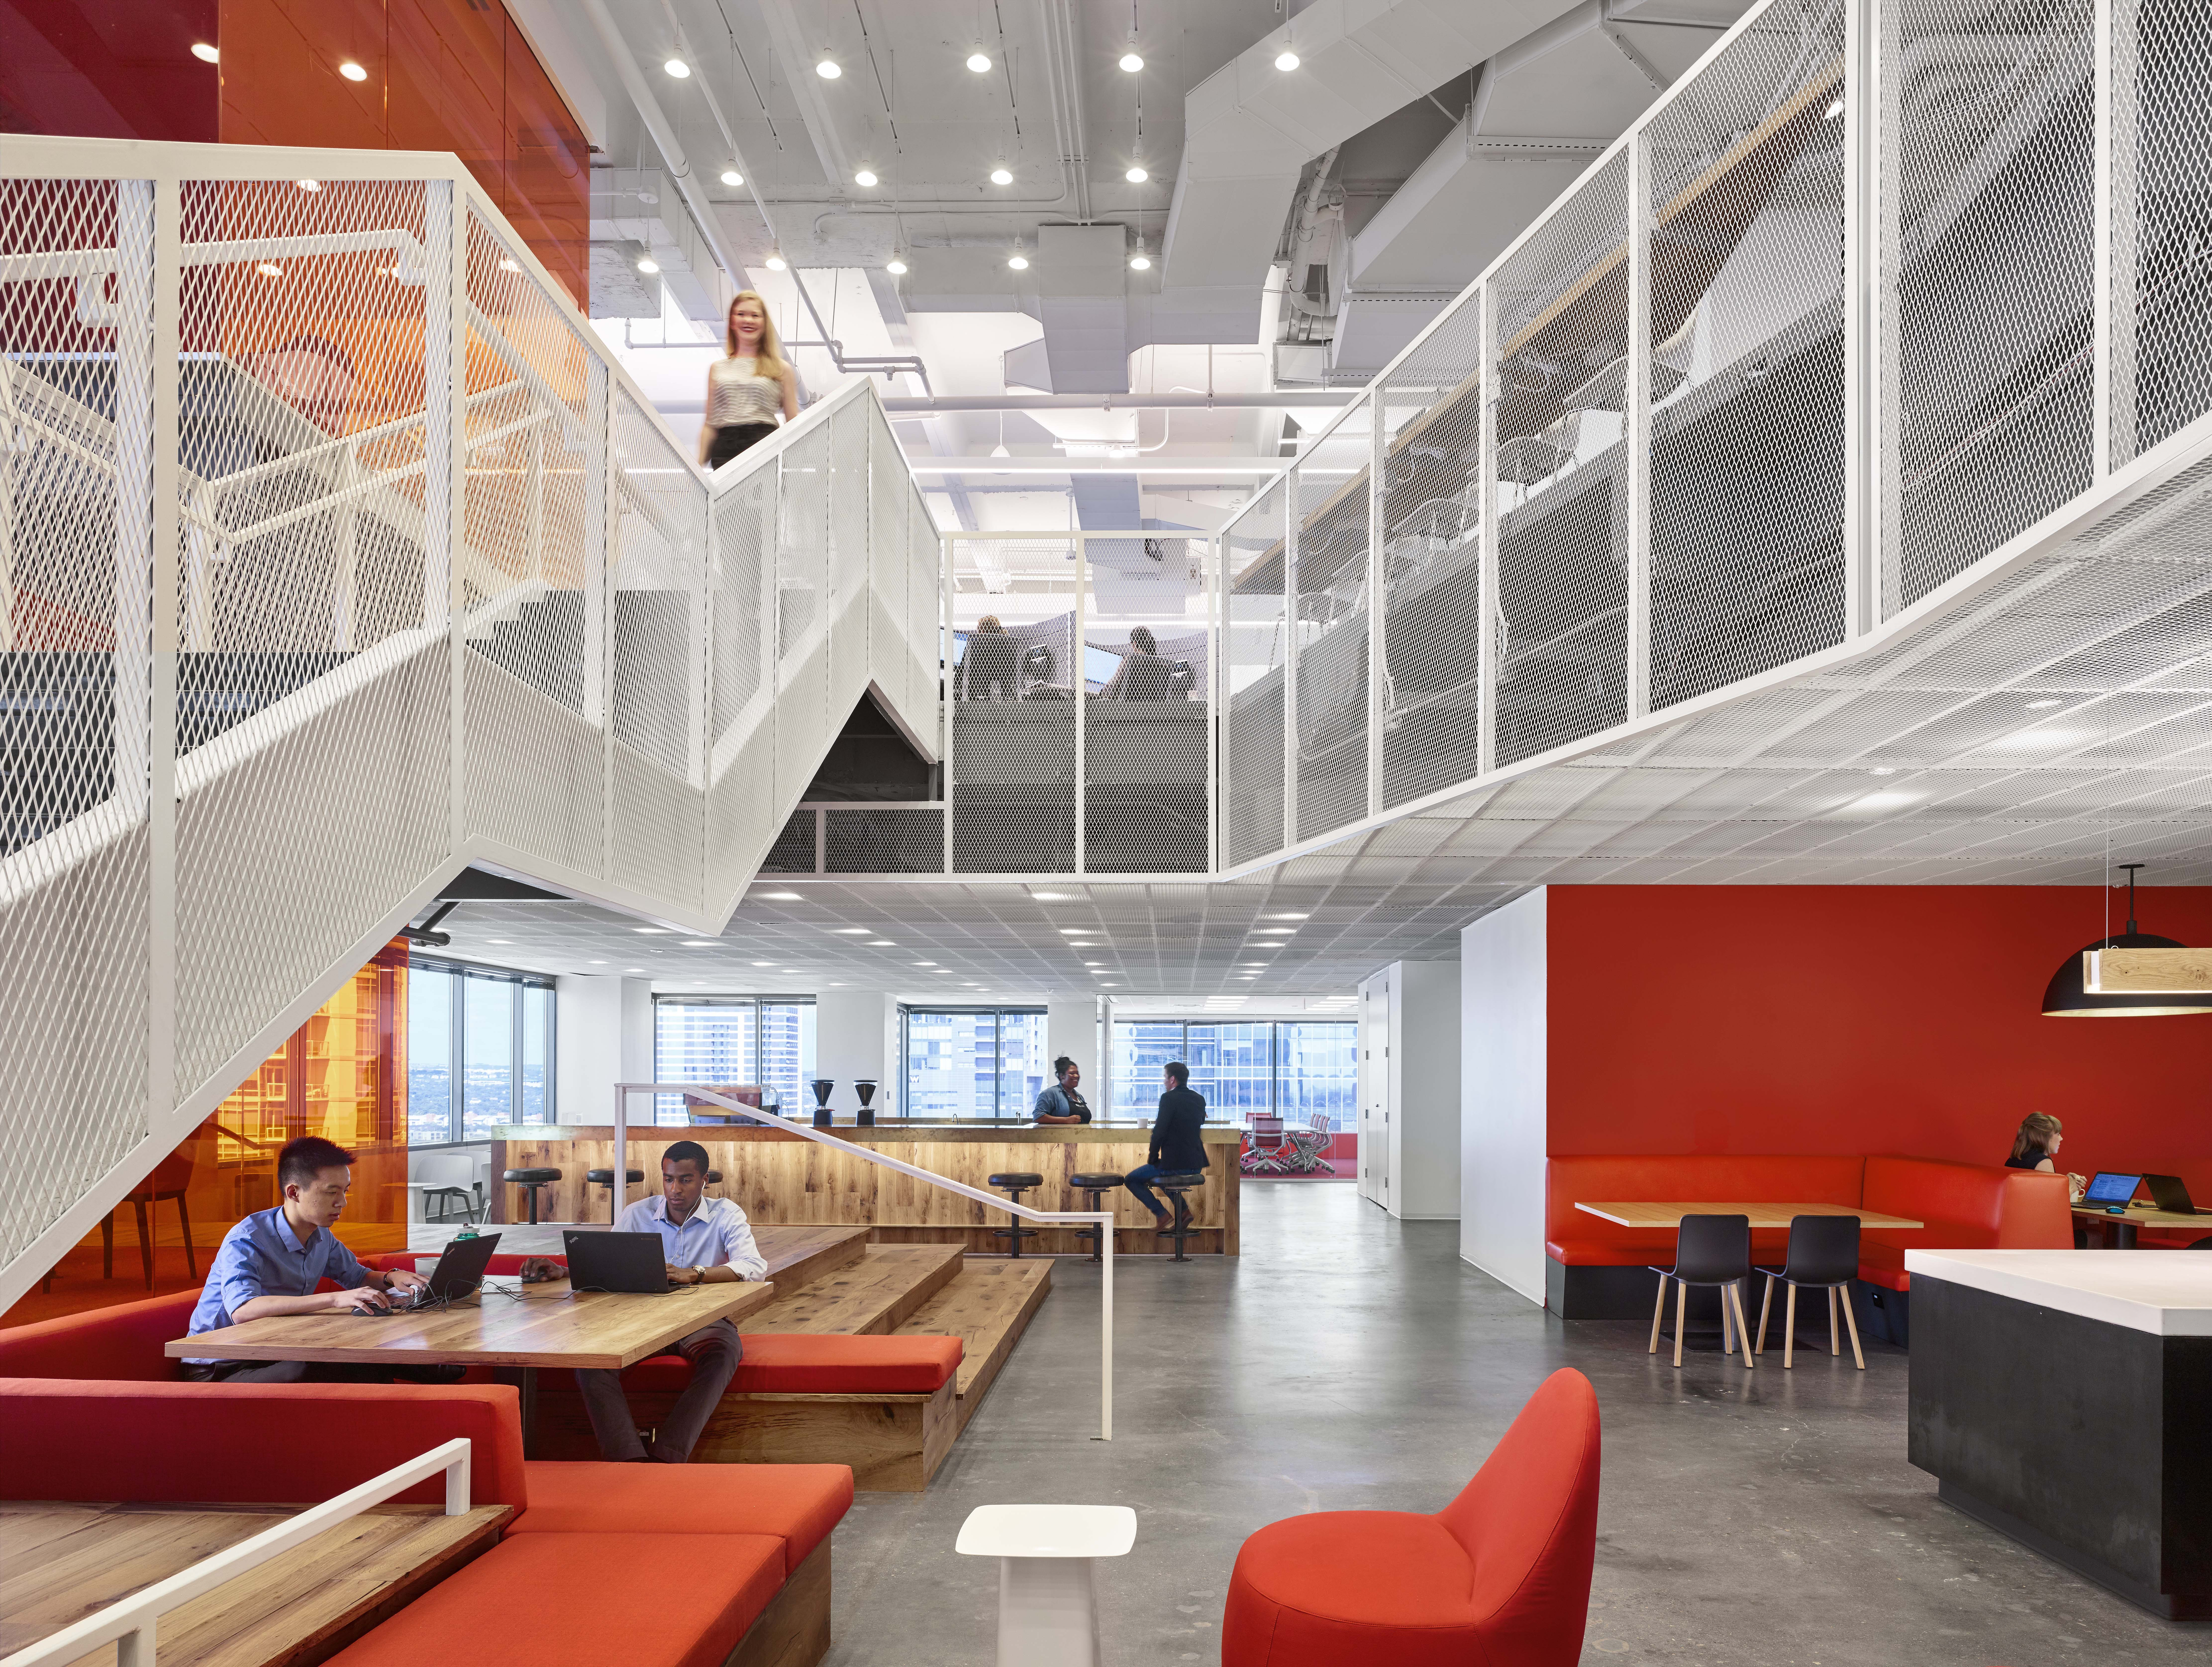 googleplex architect designs new downtown austin office space photo by casey dunn courtesy of glg gerson lehrman group inc